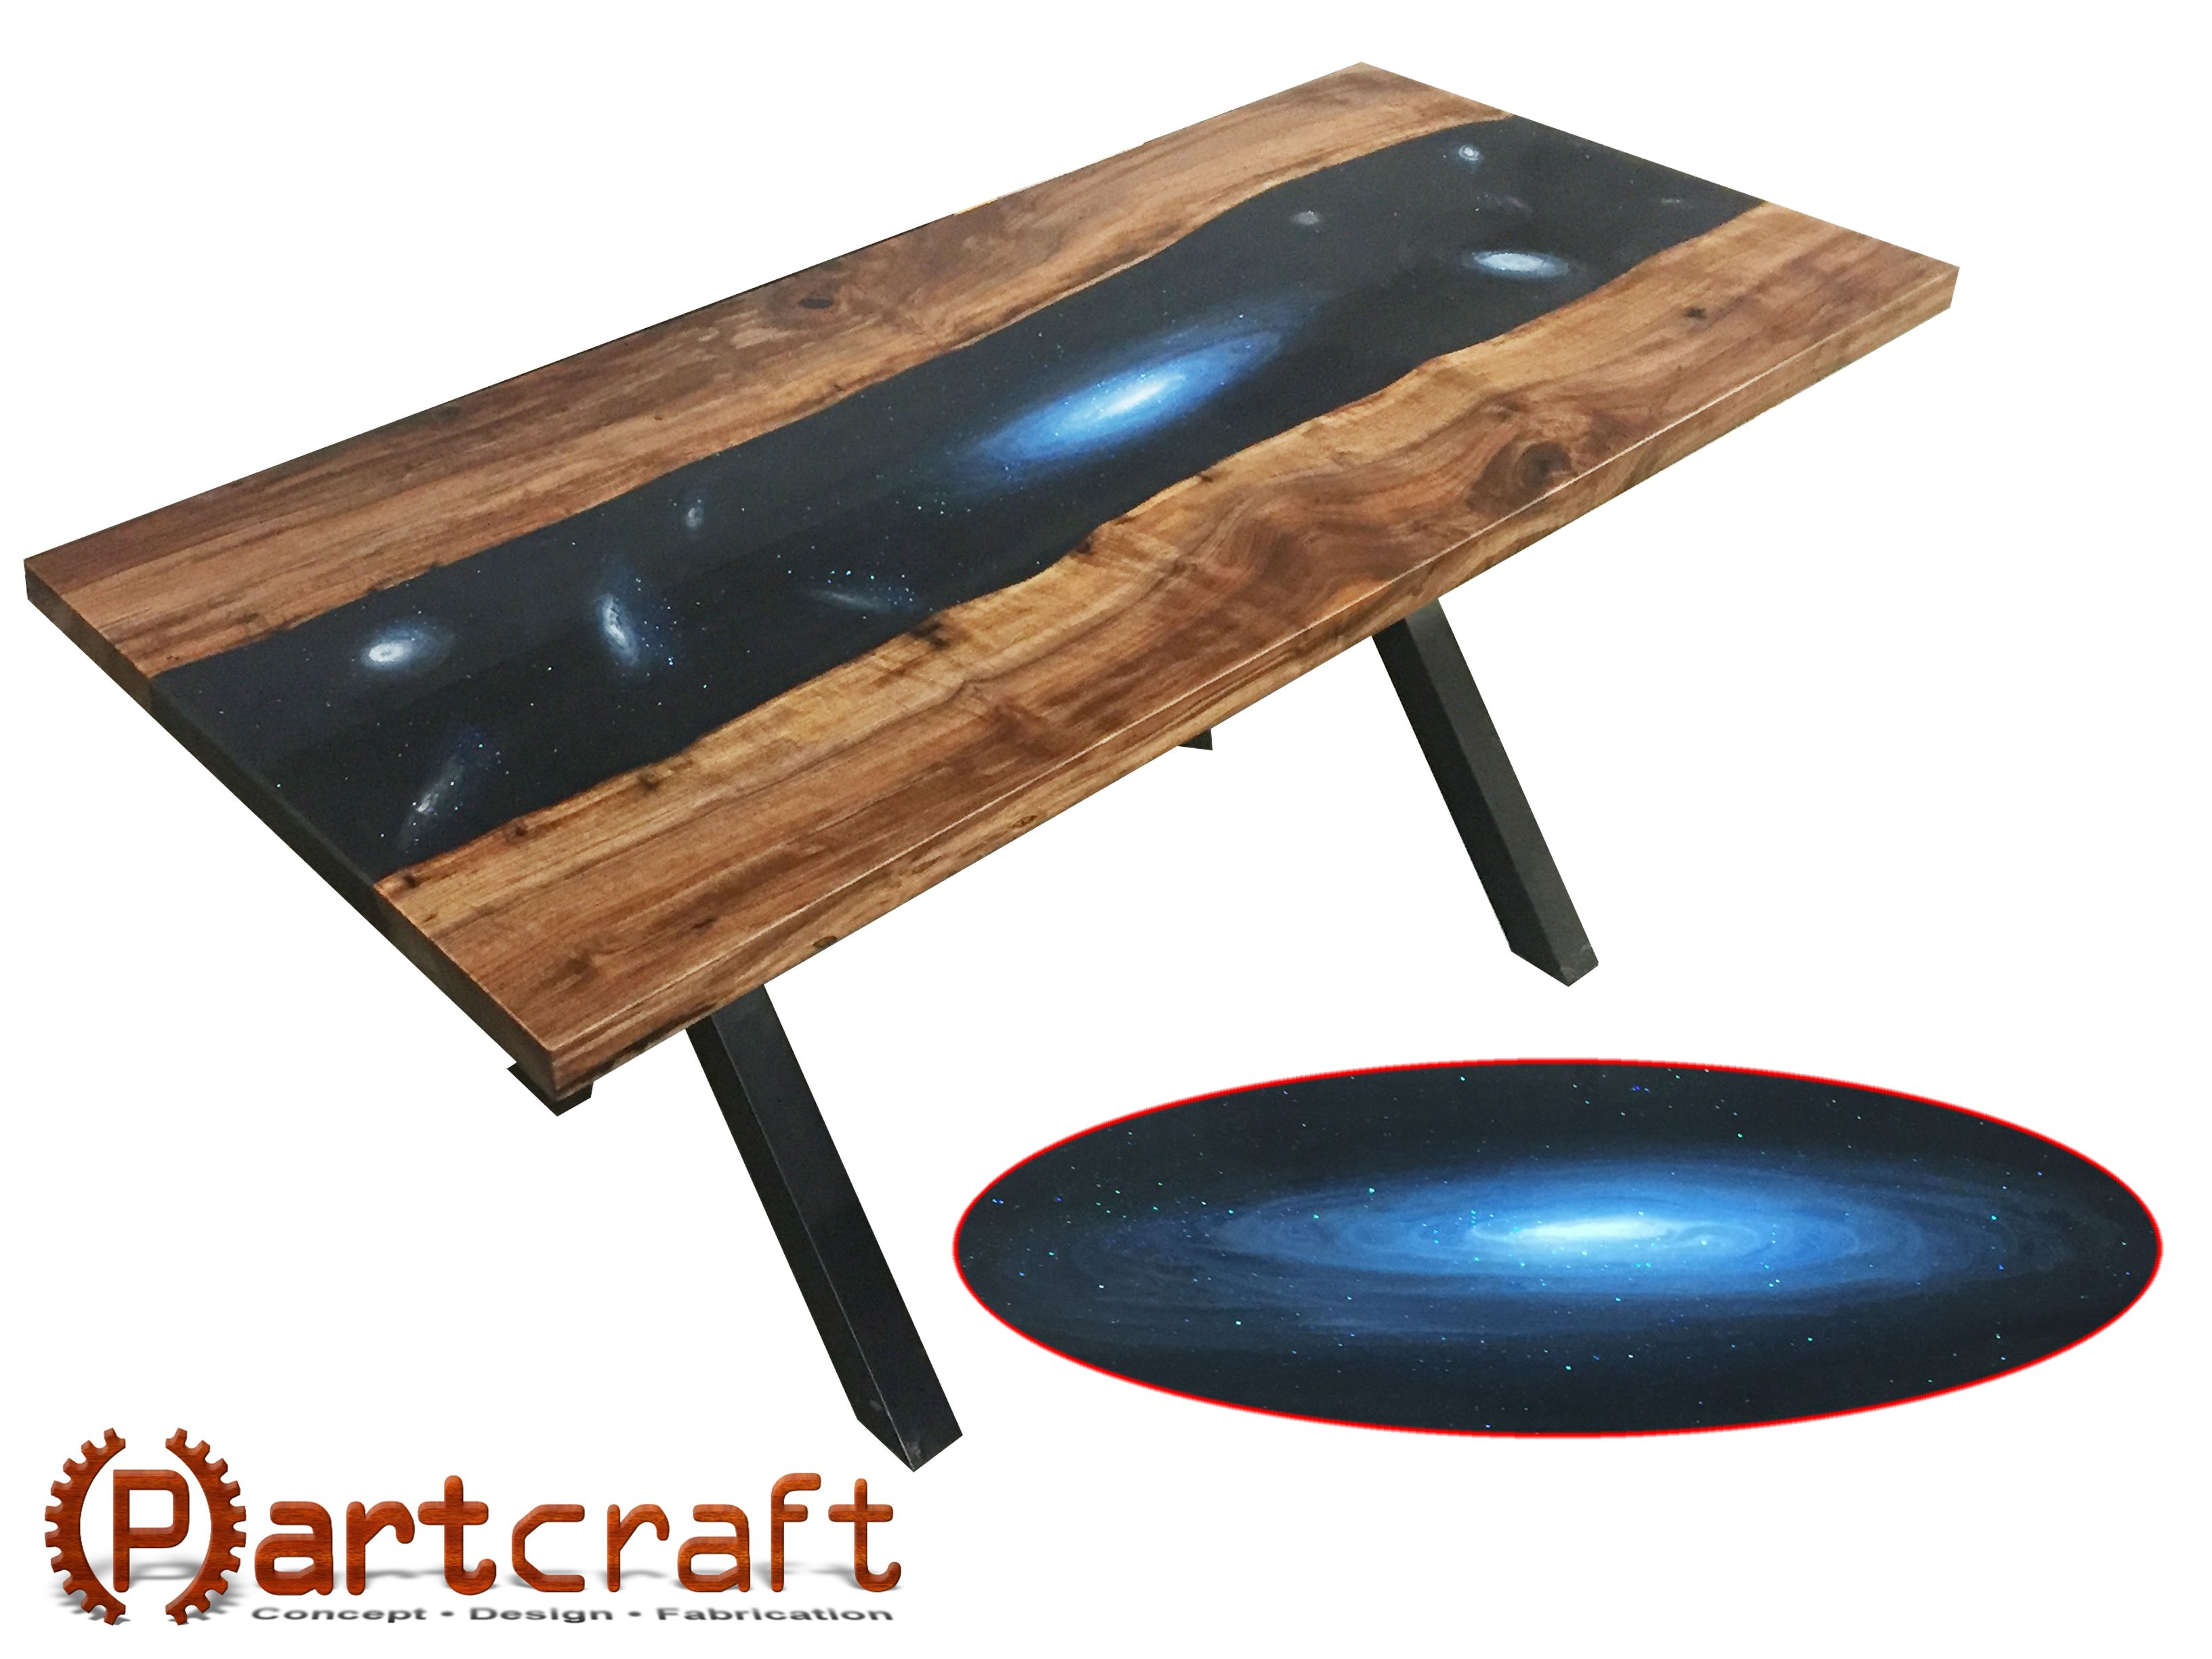 Hand Crafted Large Galaxy Themed Resin River Table Suitable For - Detachable conference table